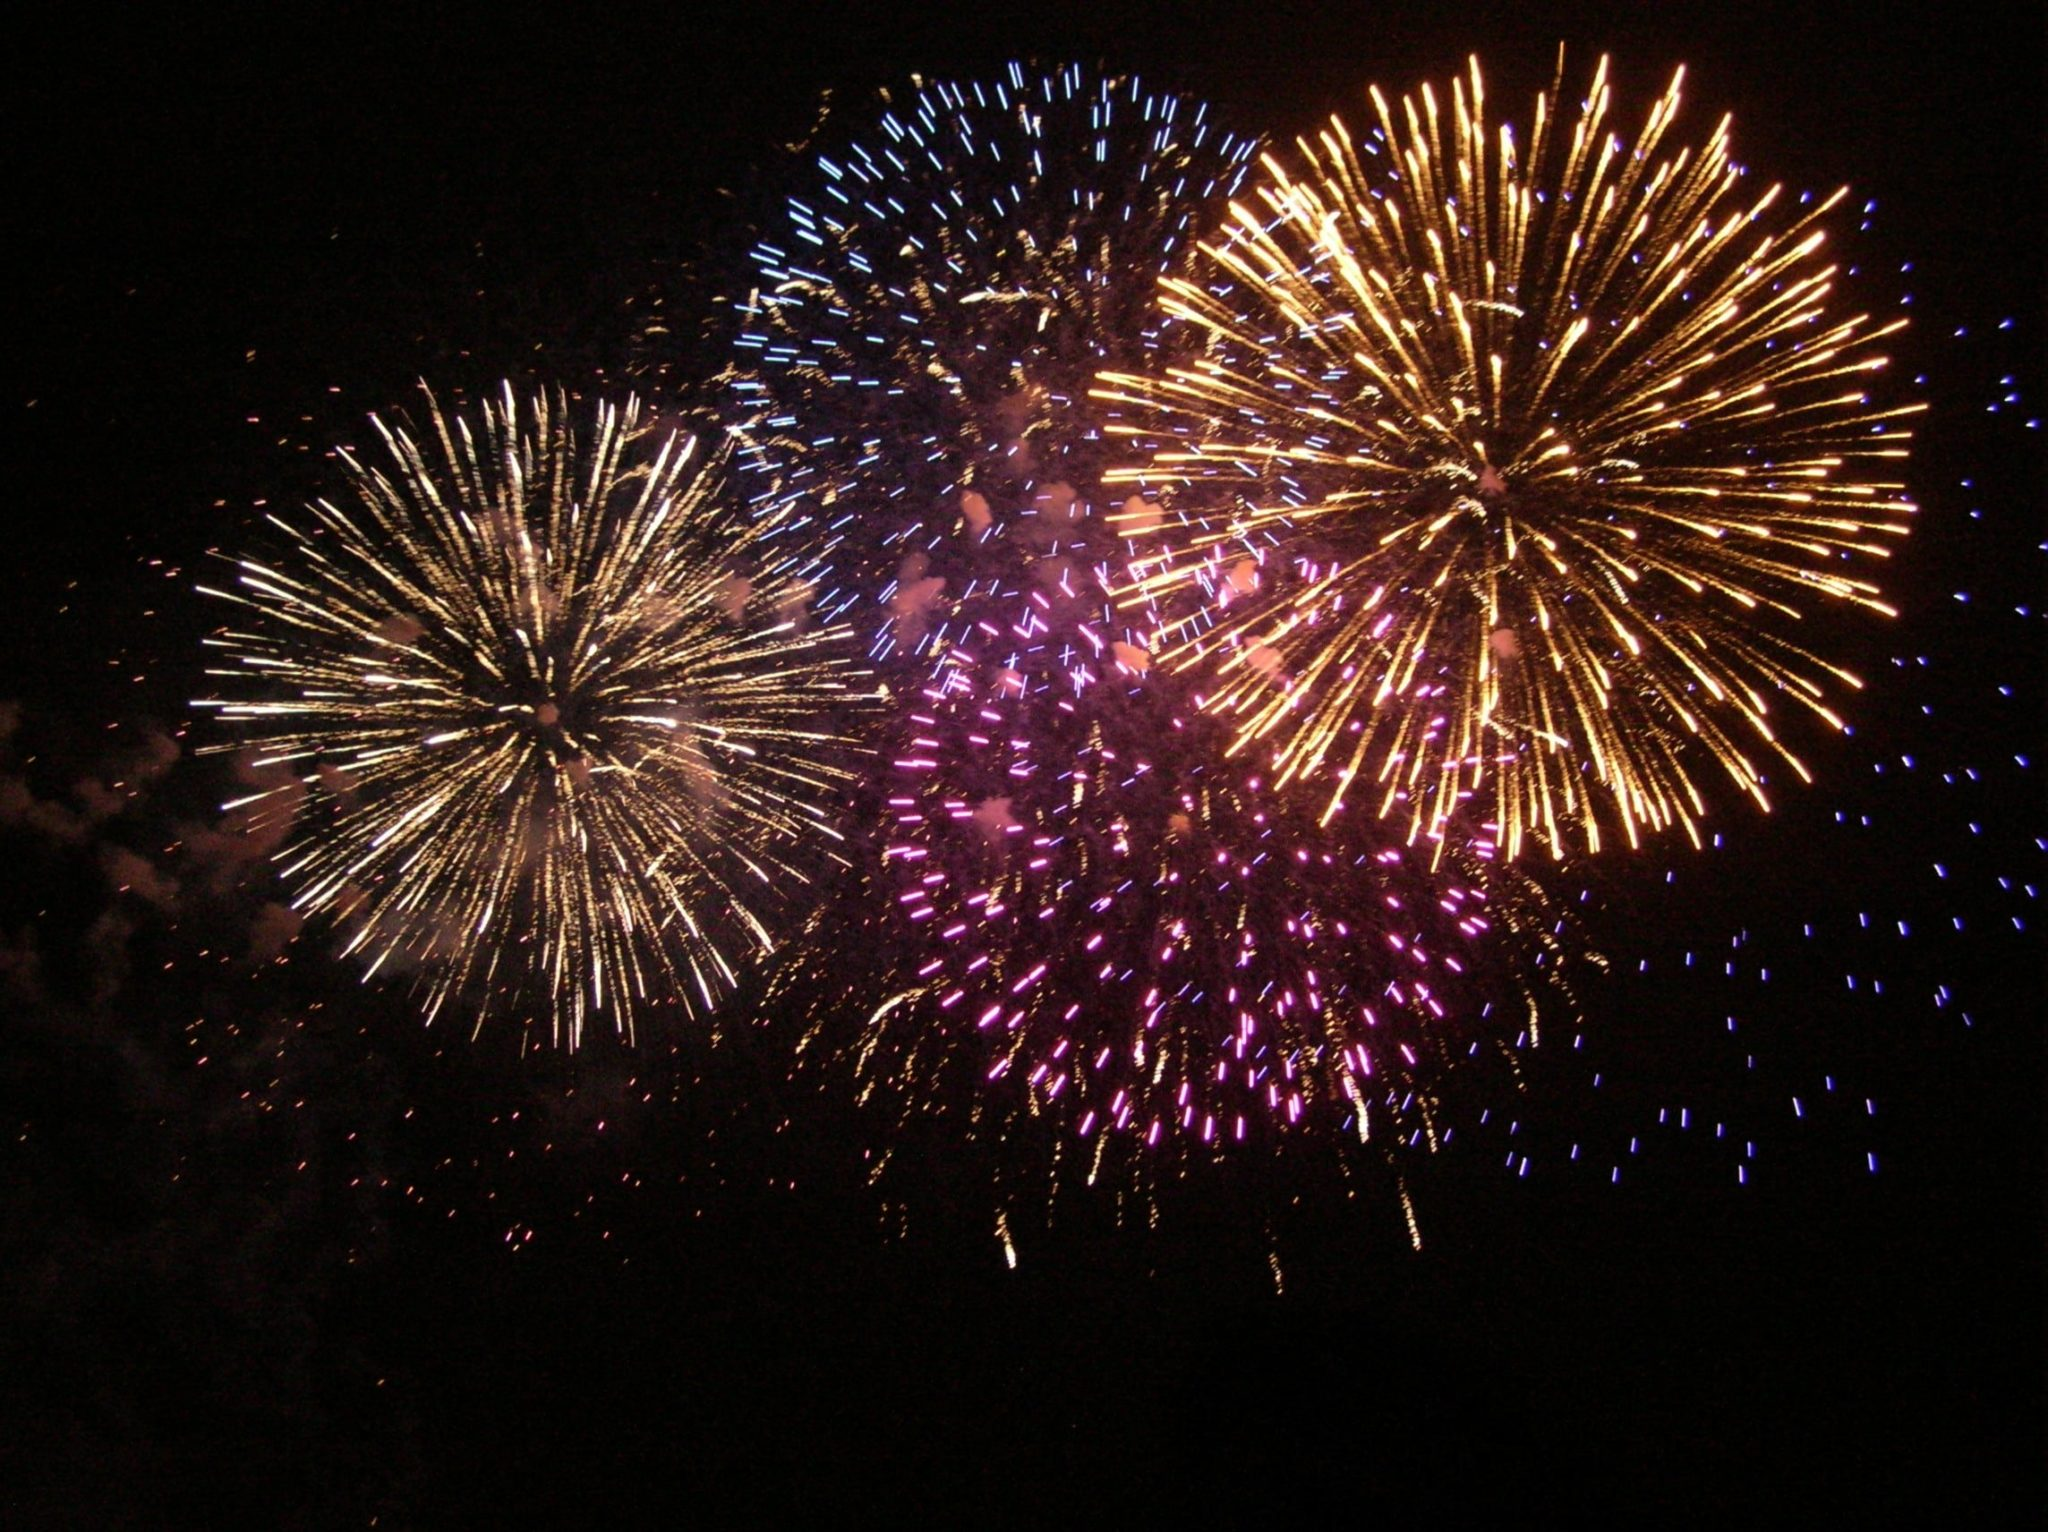 Fireworks in Homeowners Associations